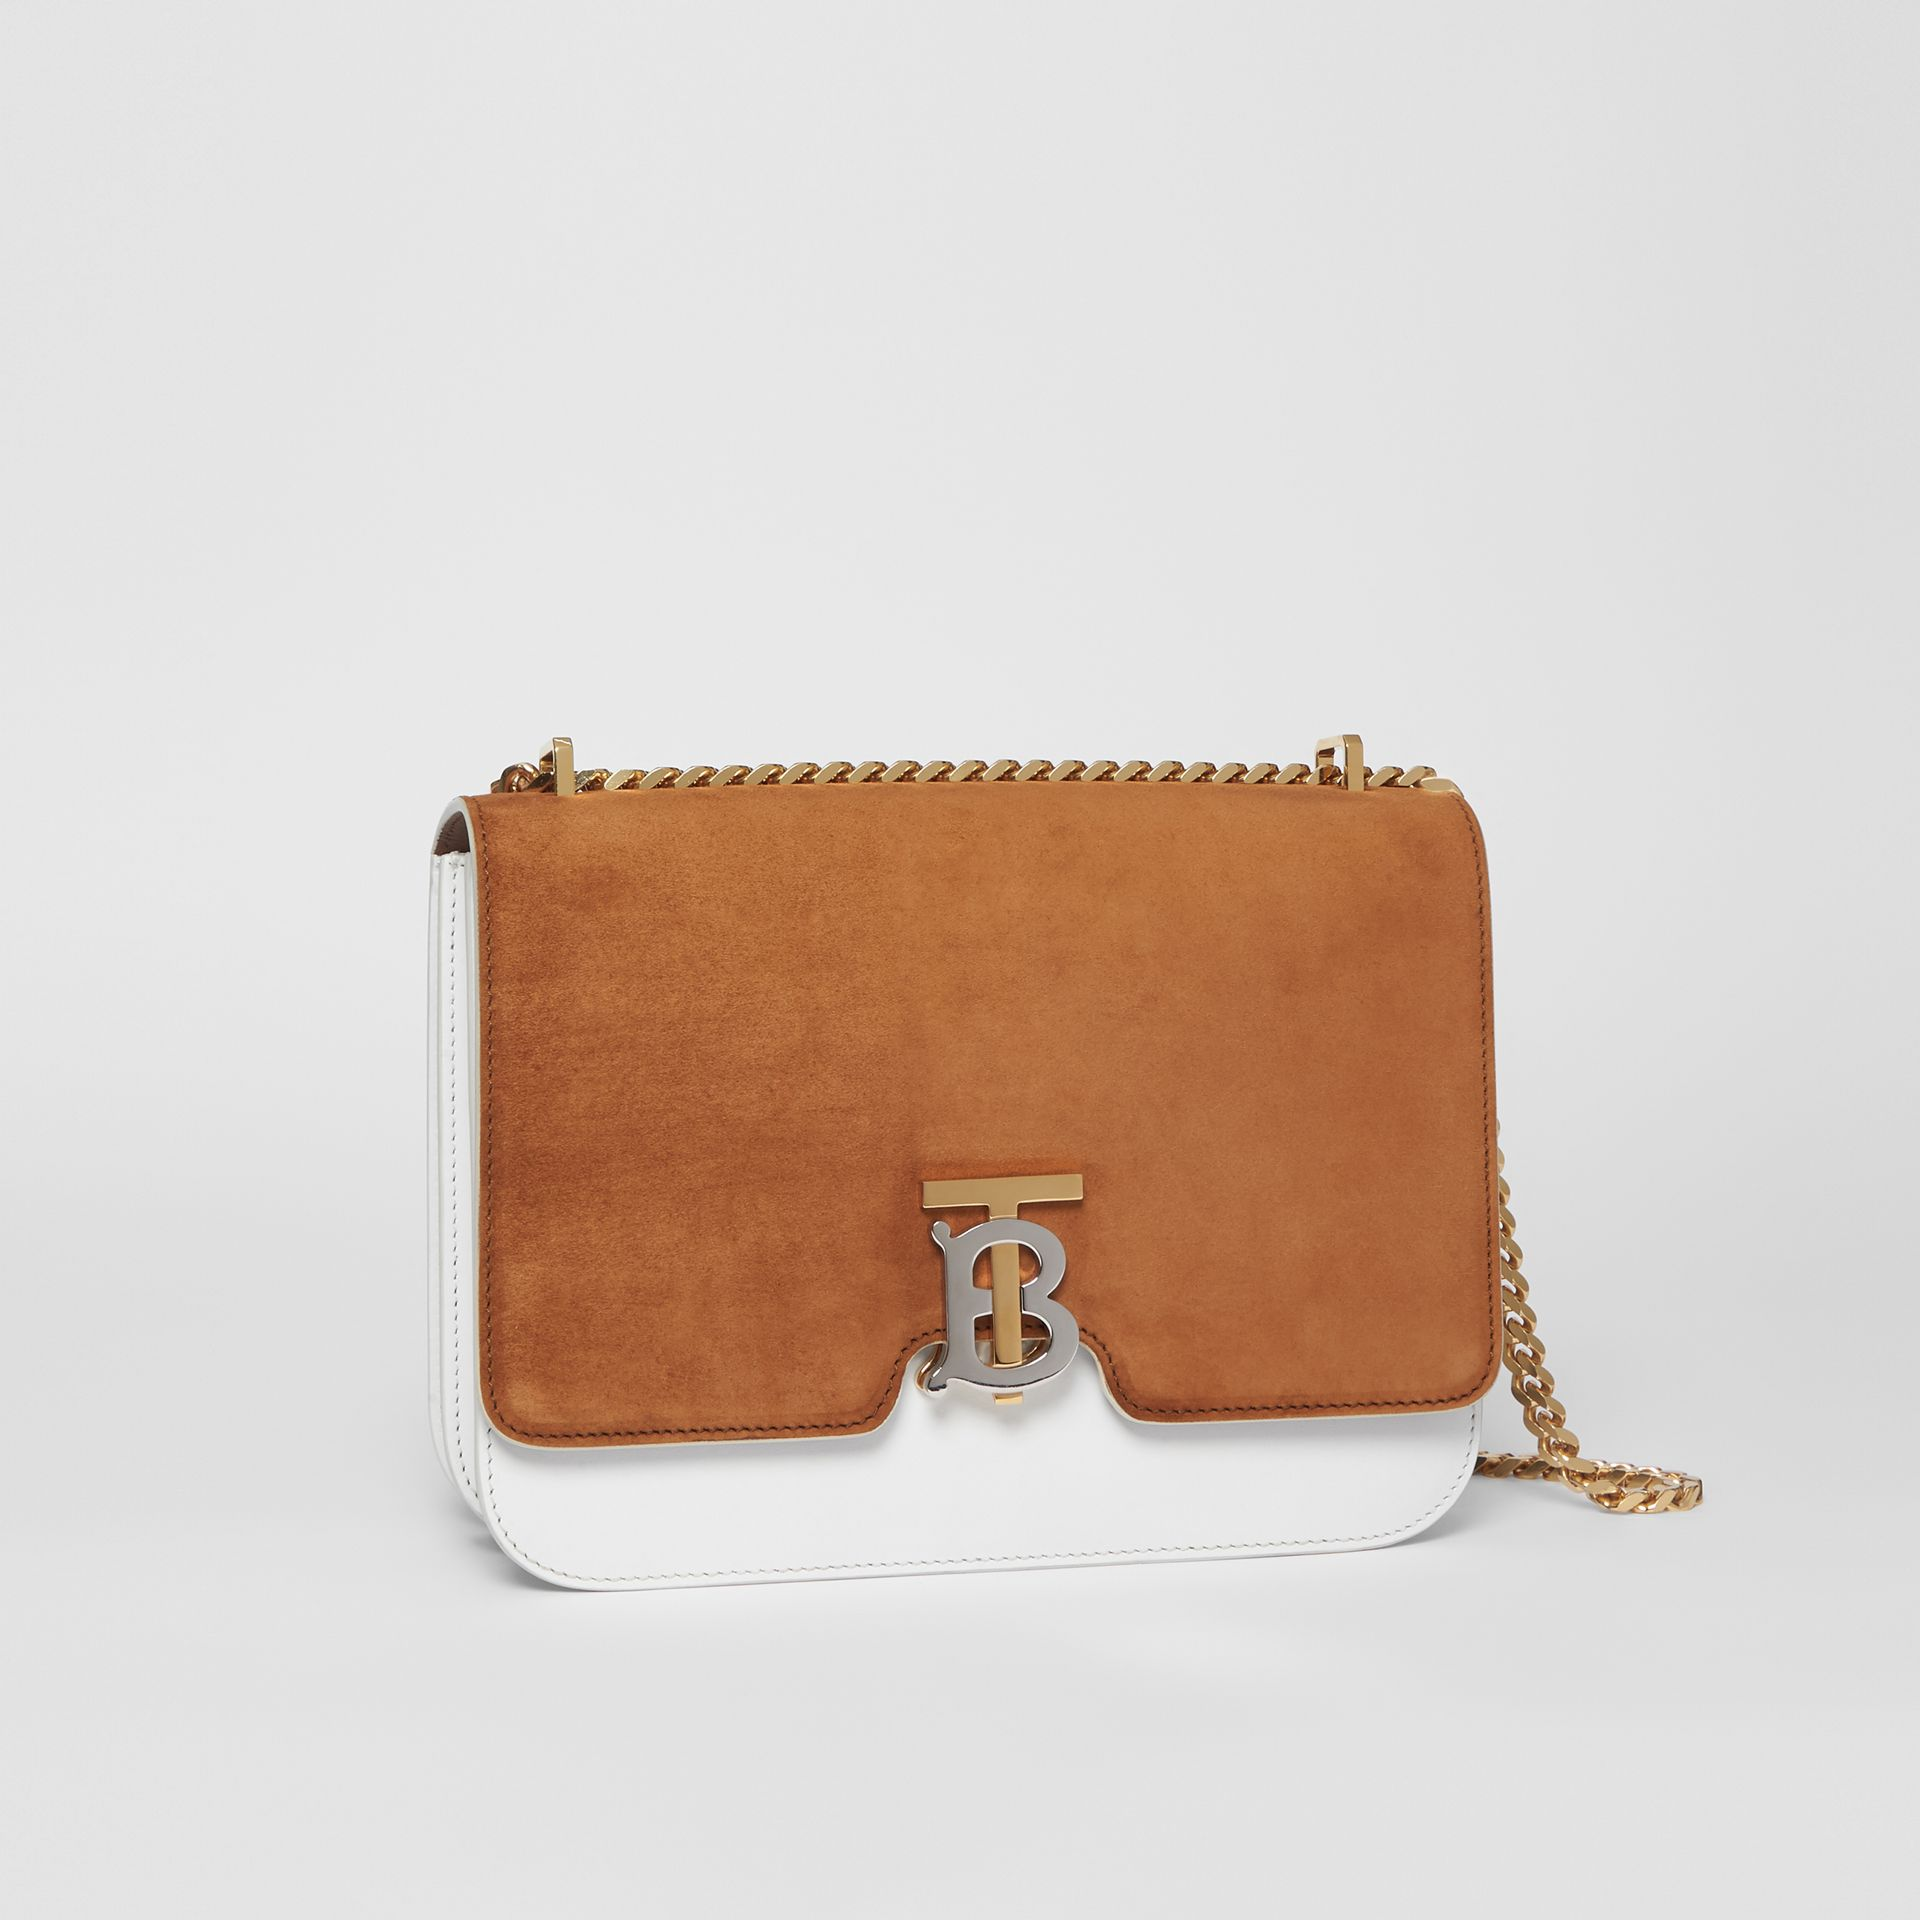 Medium Two-tone Leather and Suede TB Bag in White/brown - Women | Burberry - gallery image 6